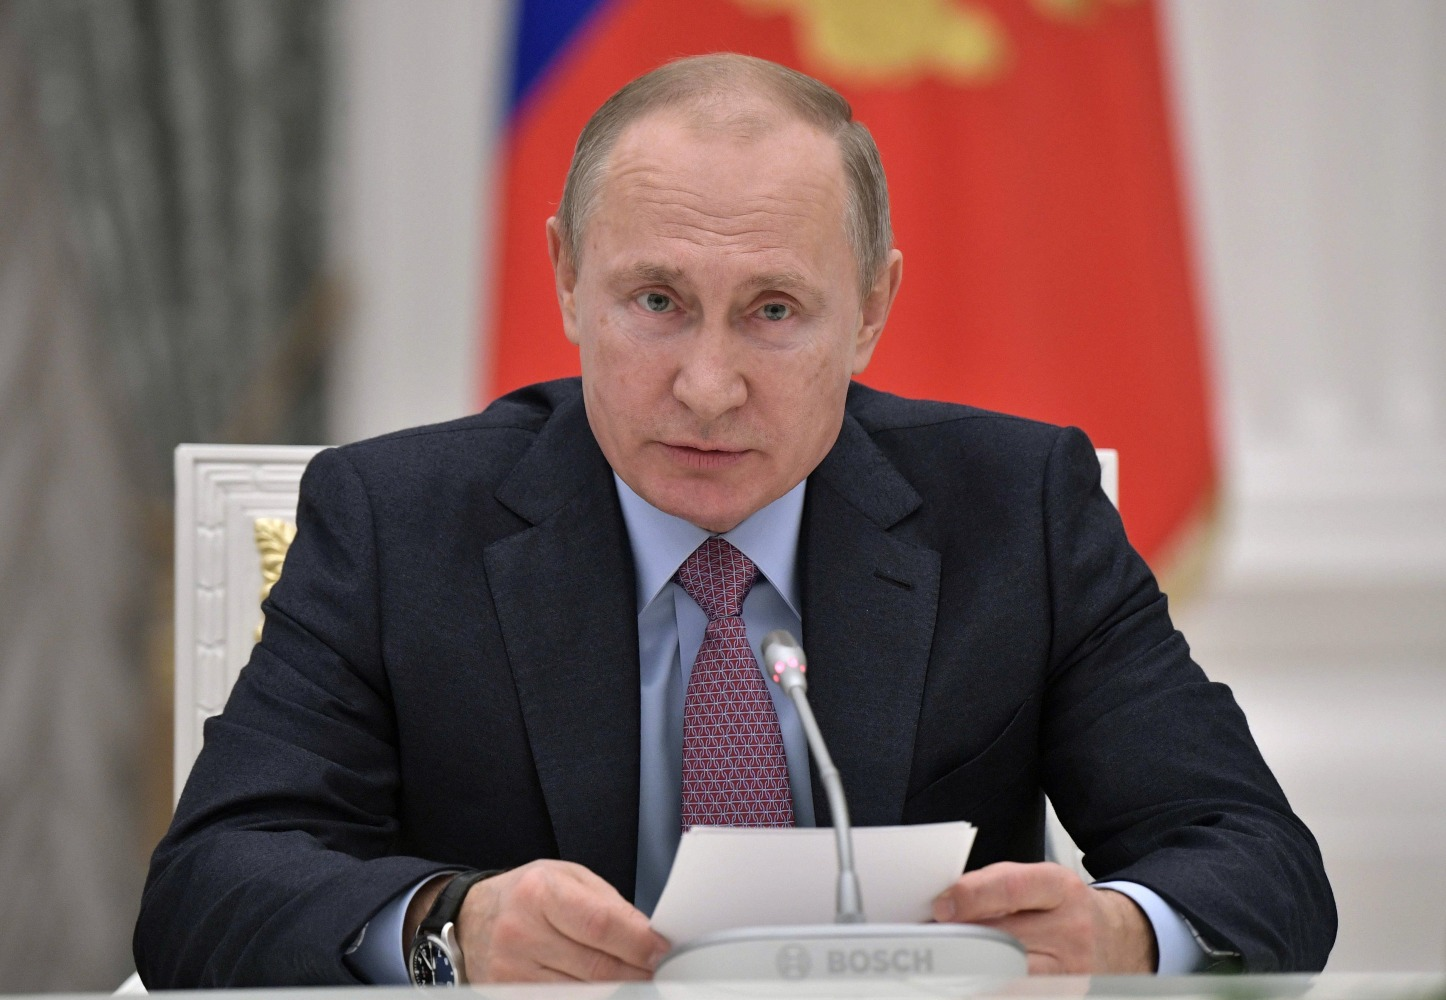 Putin to run as an independent in 2018 presidential race